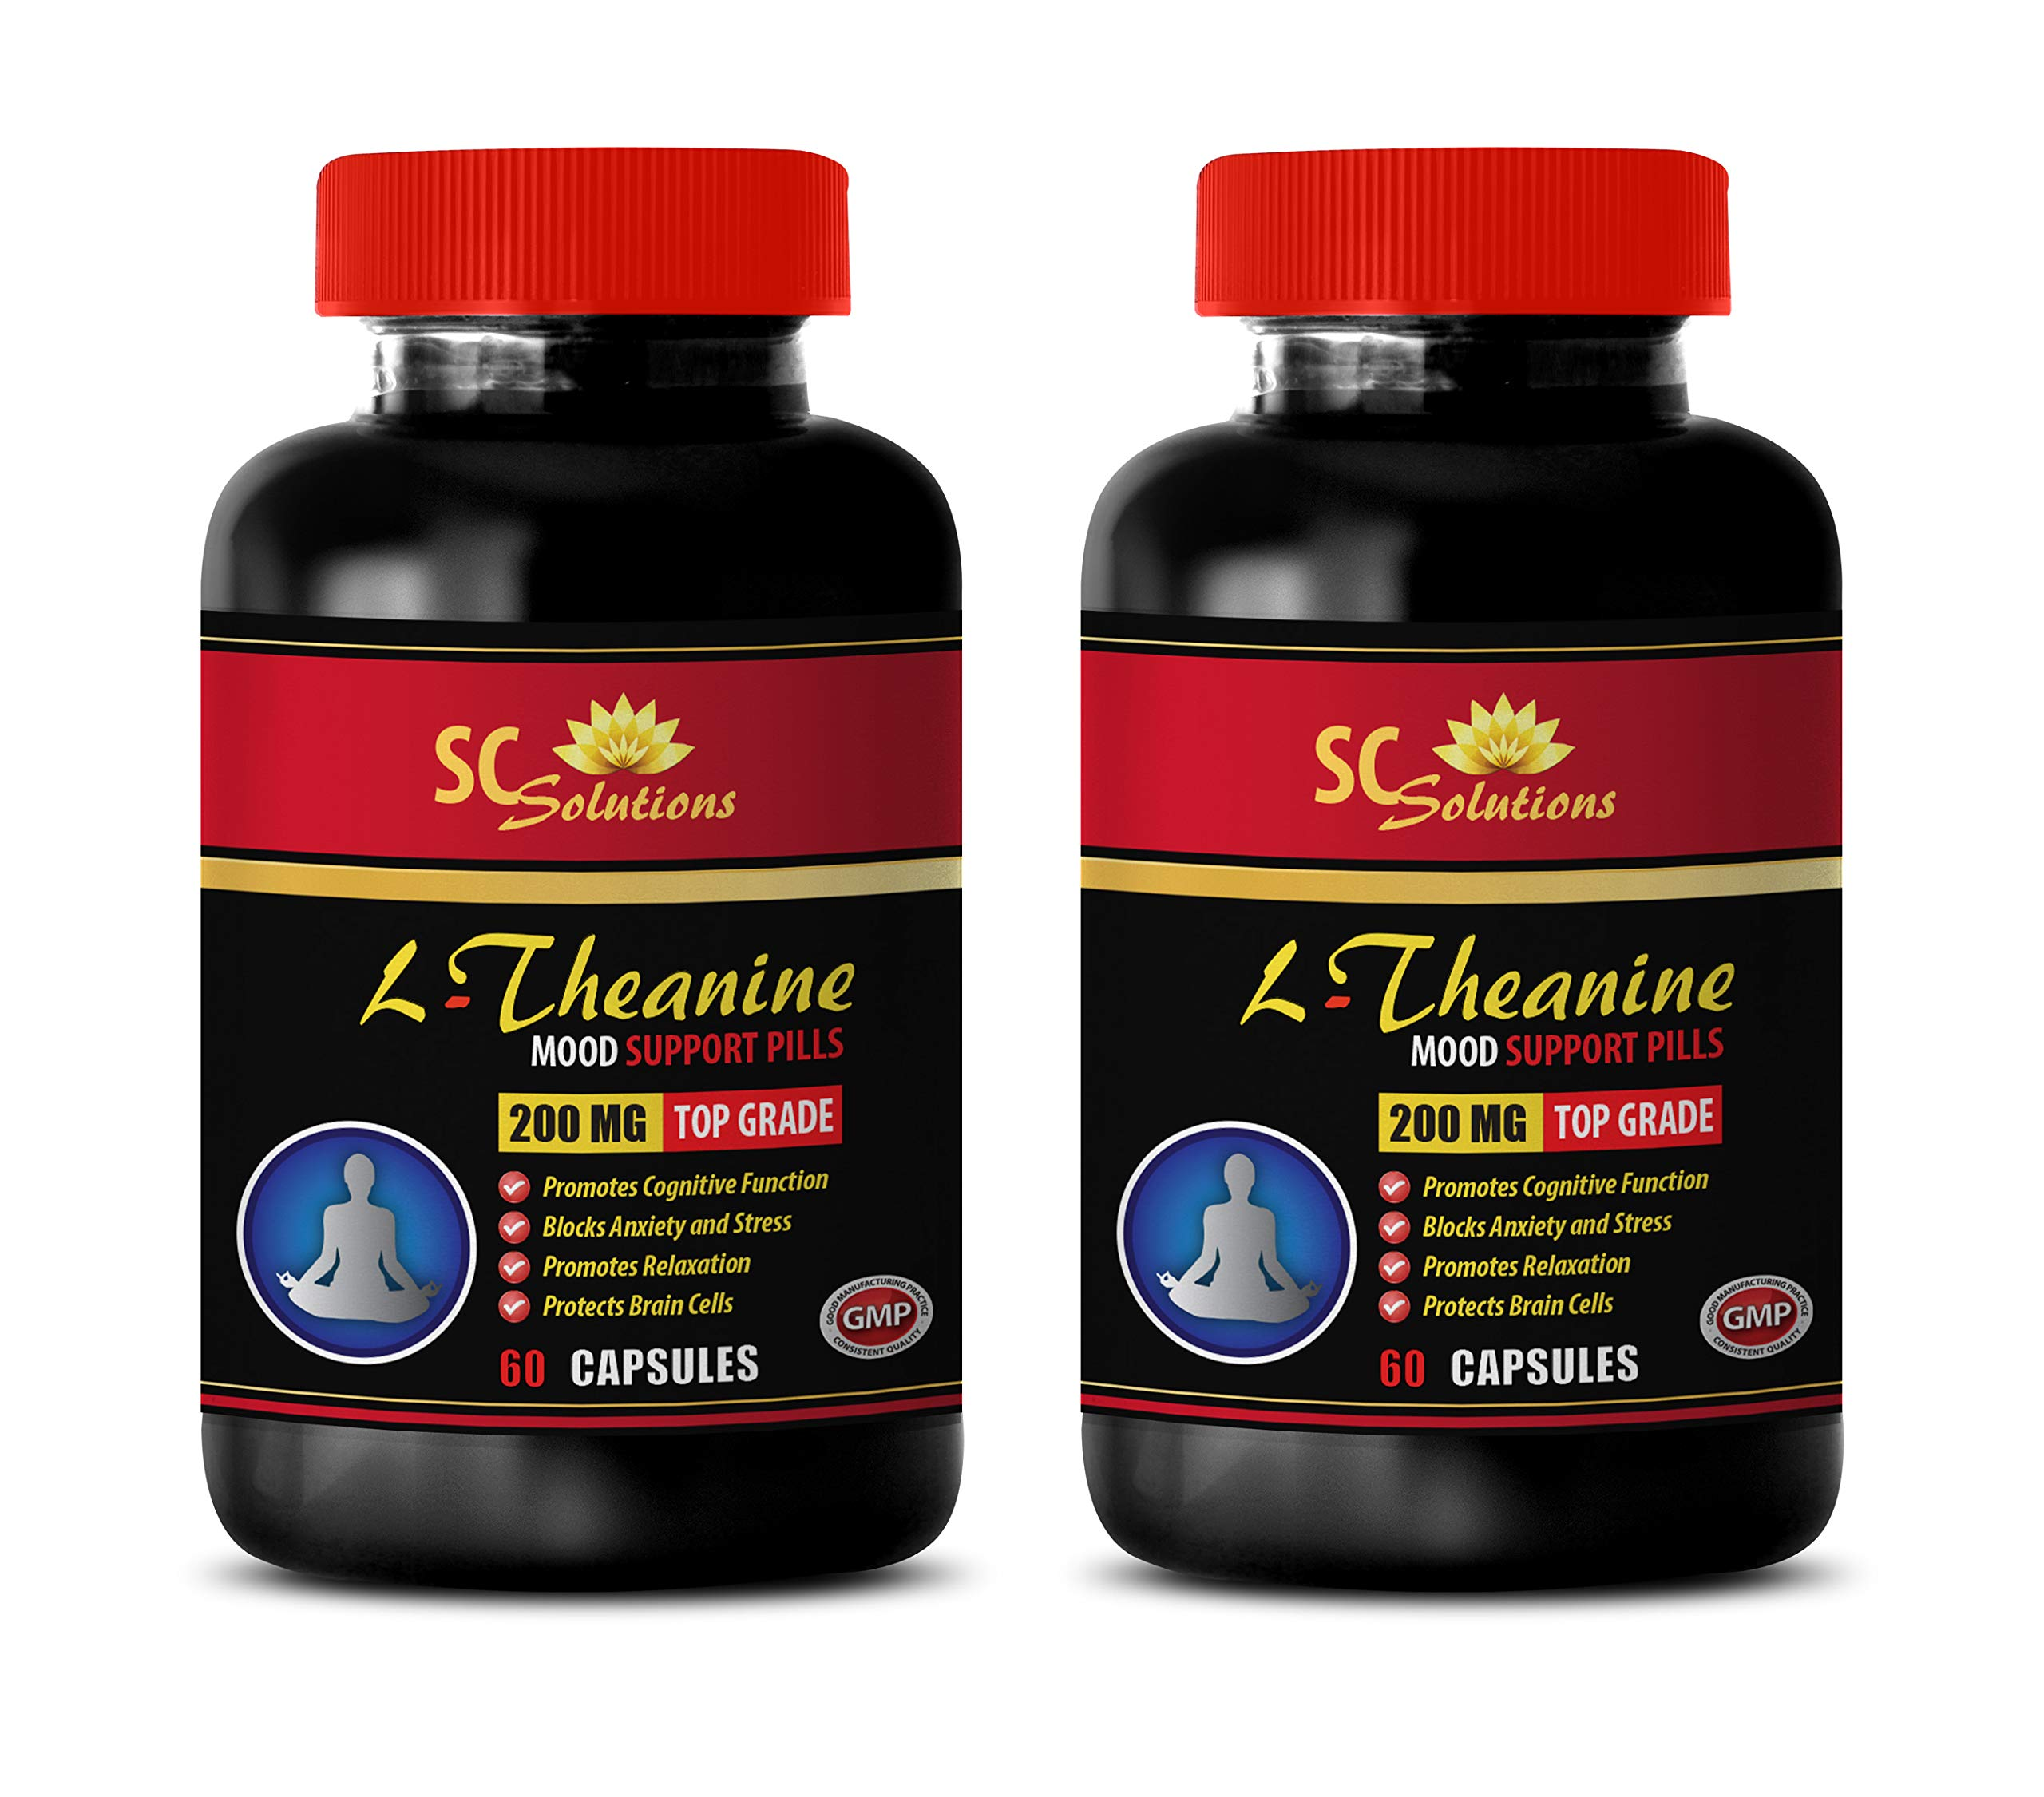 Sleeping aid Natural - L-Theanine 200MG - Energy Booster - 2 Bottles (120 Capsules)